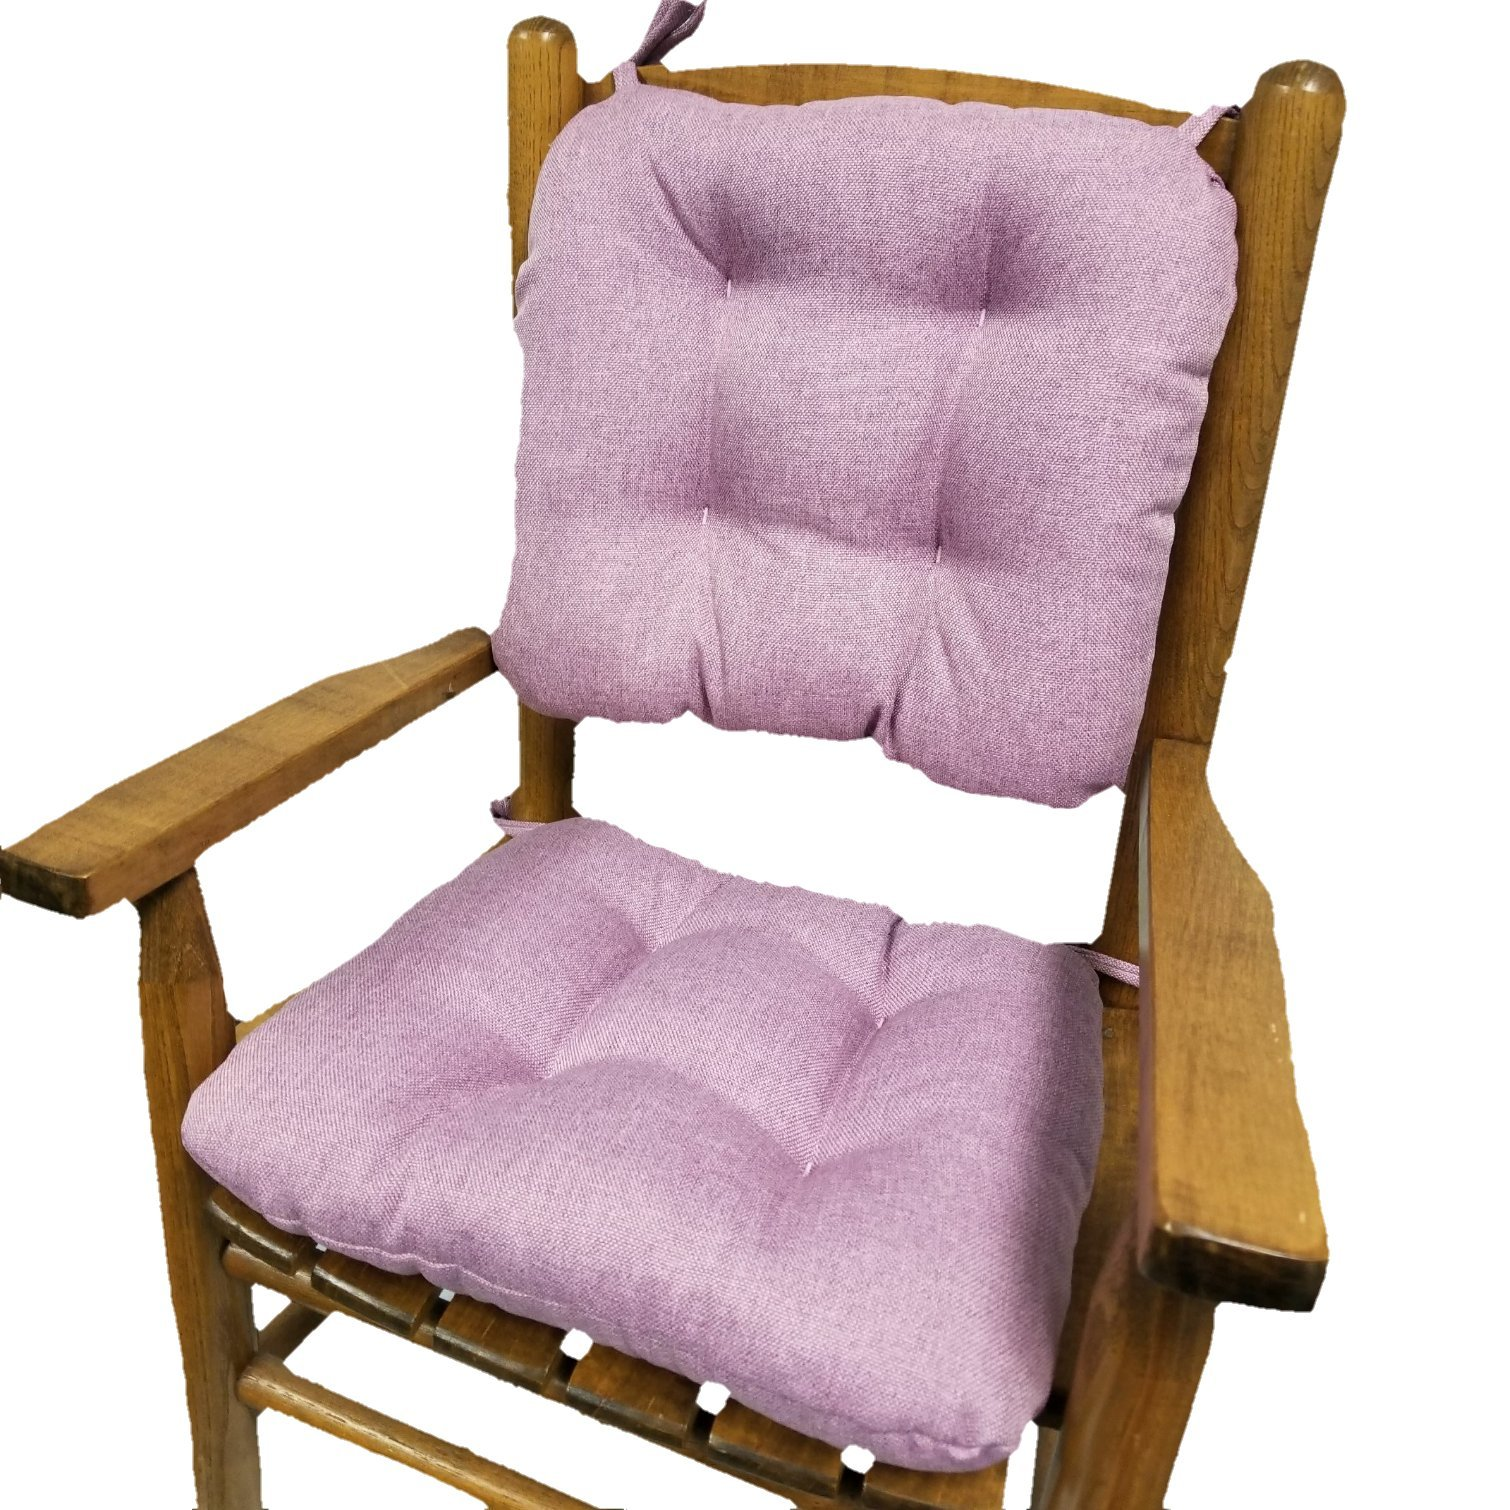 Barnett Child Rocking Chair Cushions - Seat Cushion and Back Cushion for Children's Rocker - Latex Foam Fill, Tufted, Reversible, with Ties - Machine Washable (Hayden Lavender, Child Size)